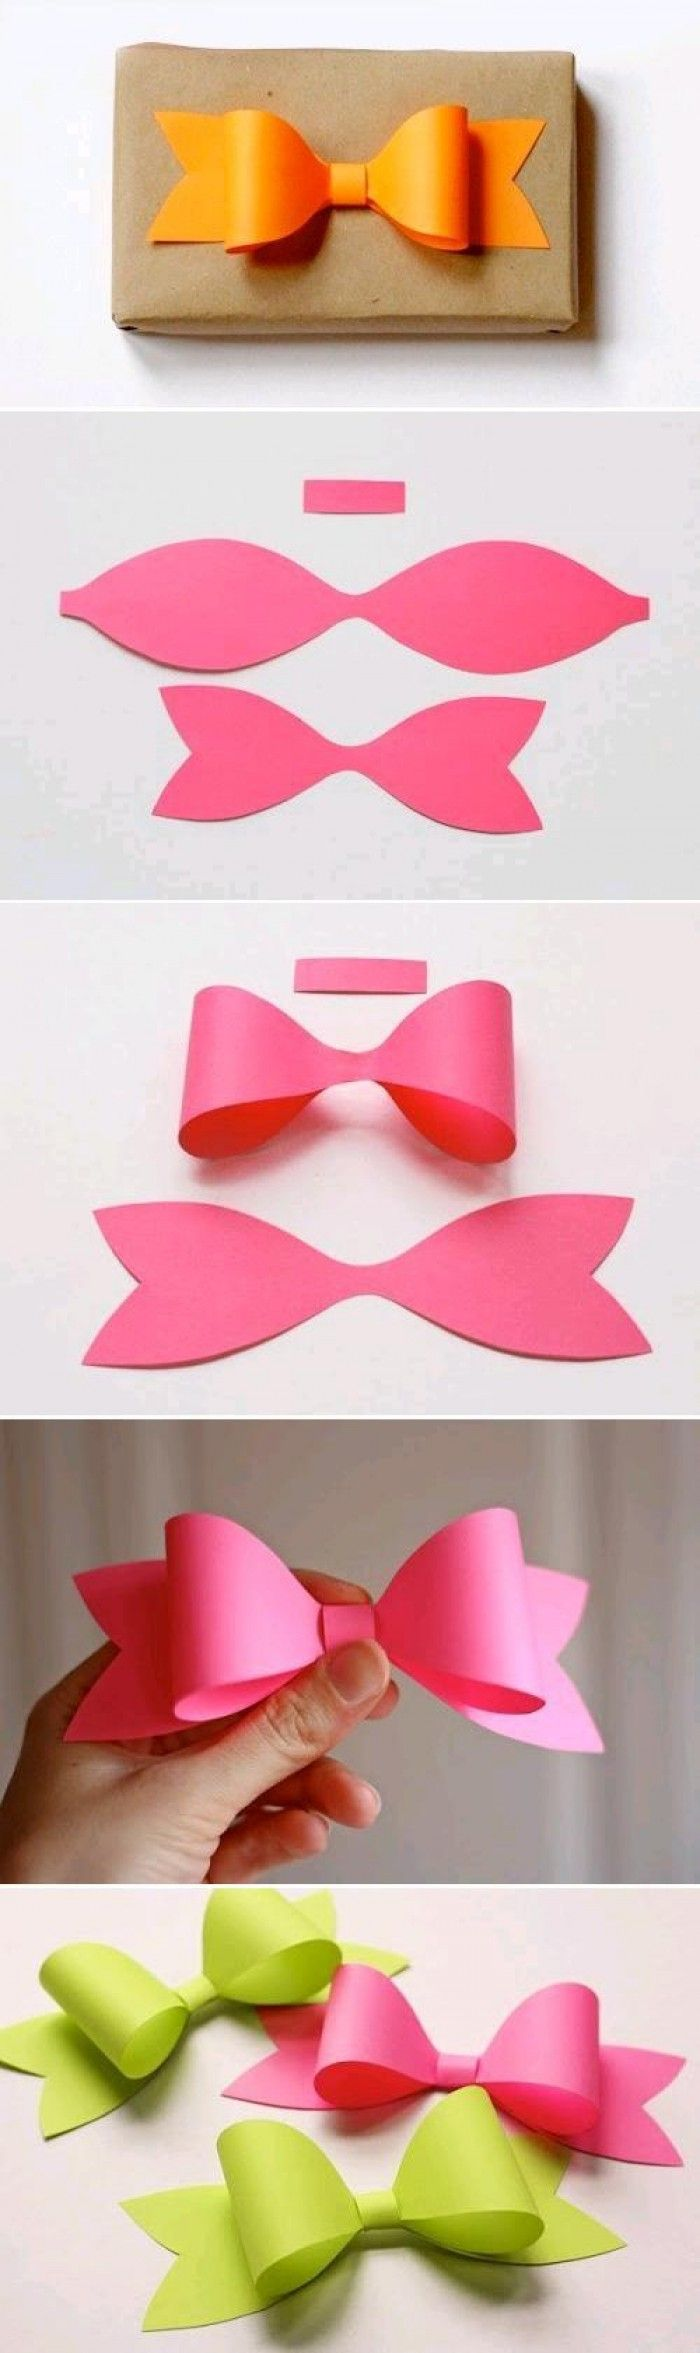 best do it yourself images on pinterest good ideas creative